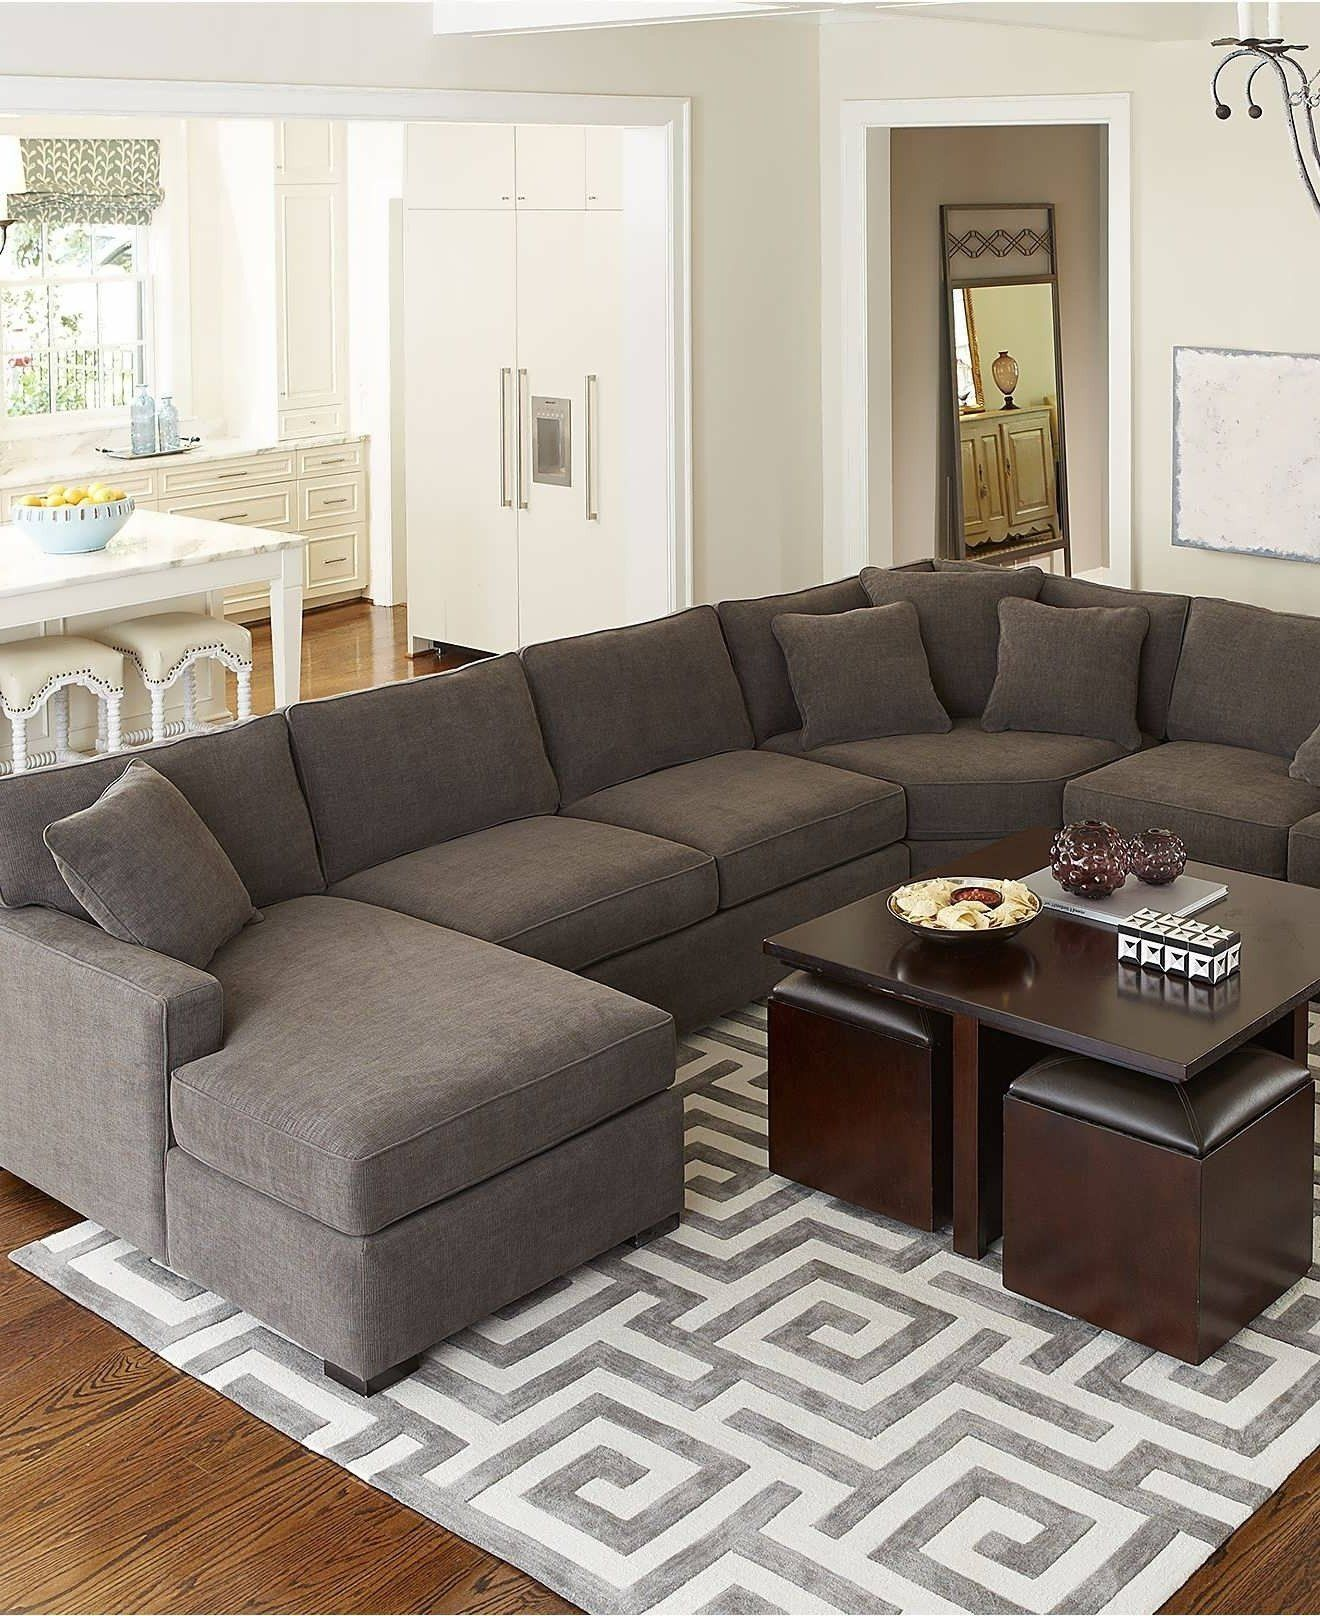 Tapestry Sofa Living Room Furniture S Of Philippines Sectional Sofas  Showing 14 Of 20 S | Living Room Sofa, Sectional Sofa Decor, Sectional Living  Room Sets